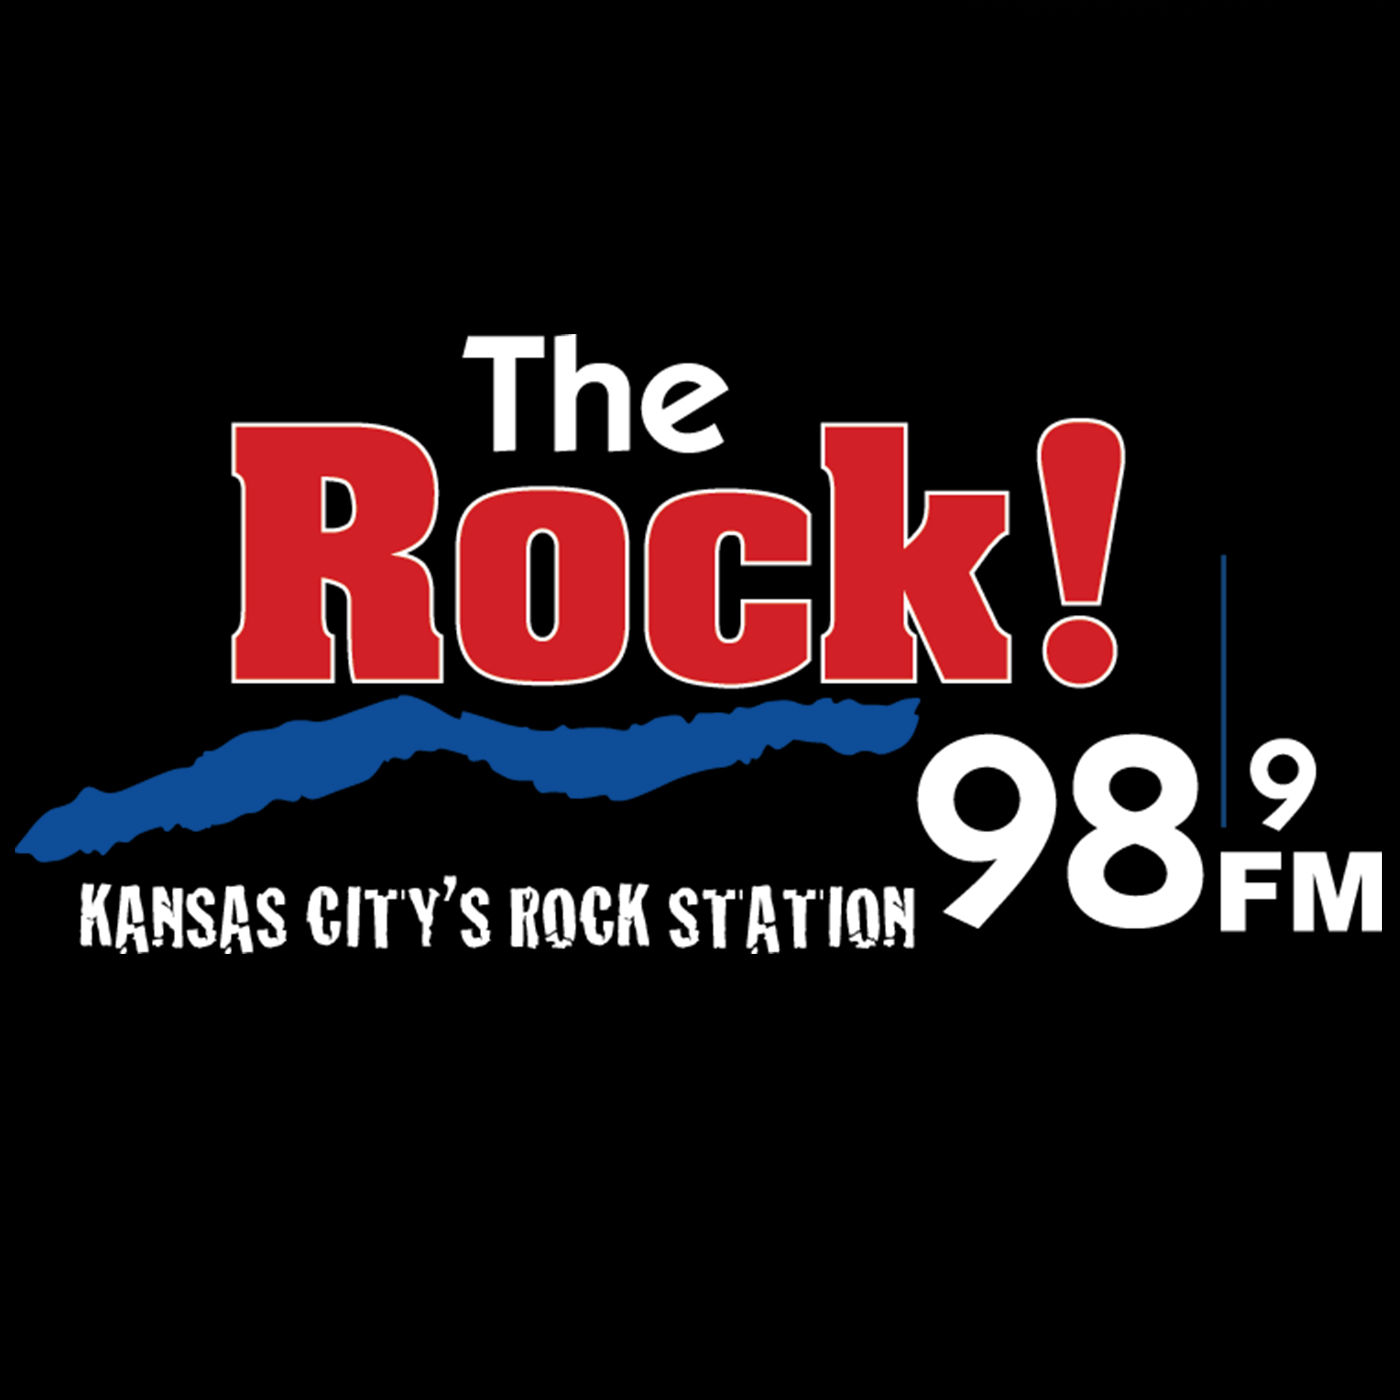 The Rock! station image